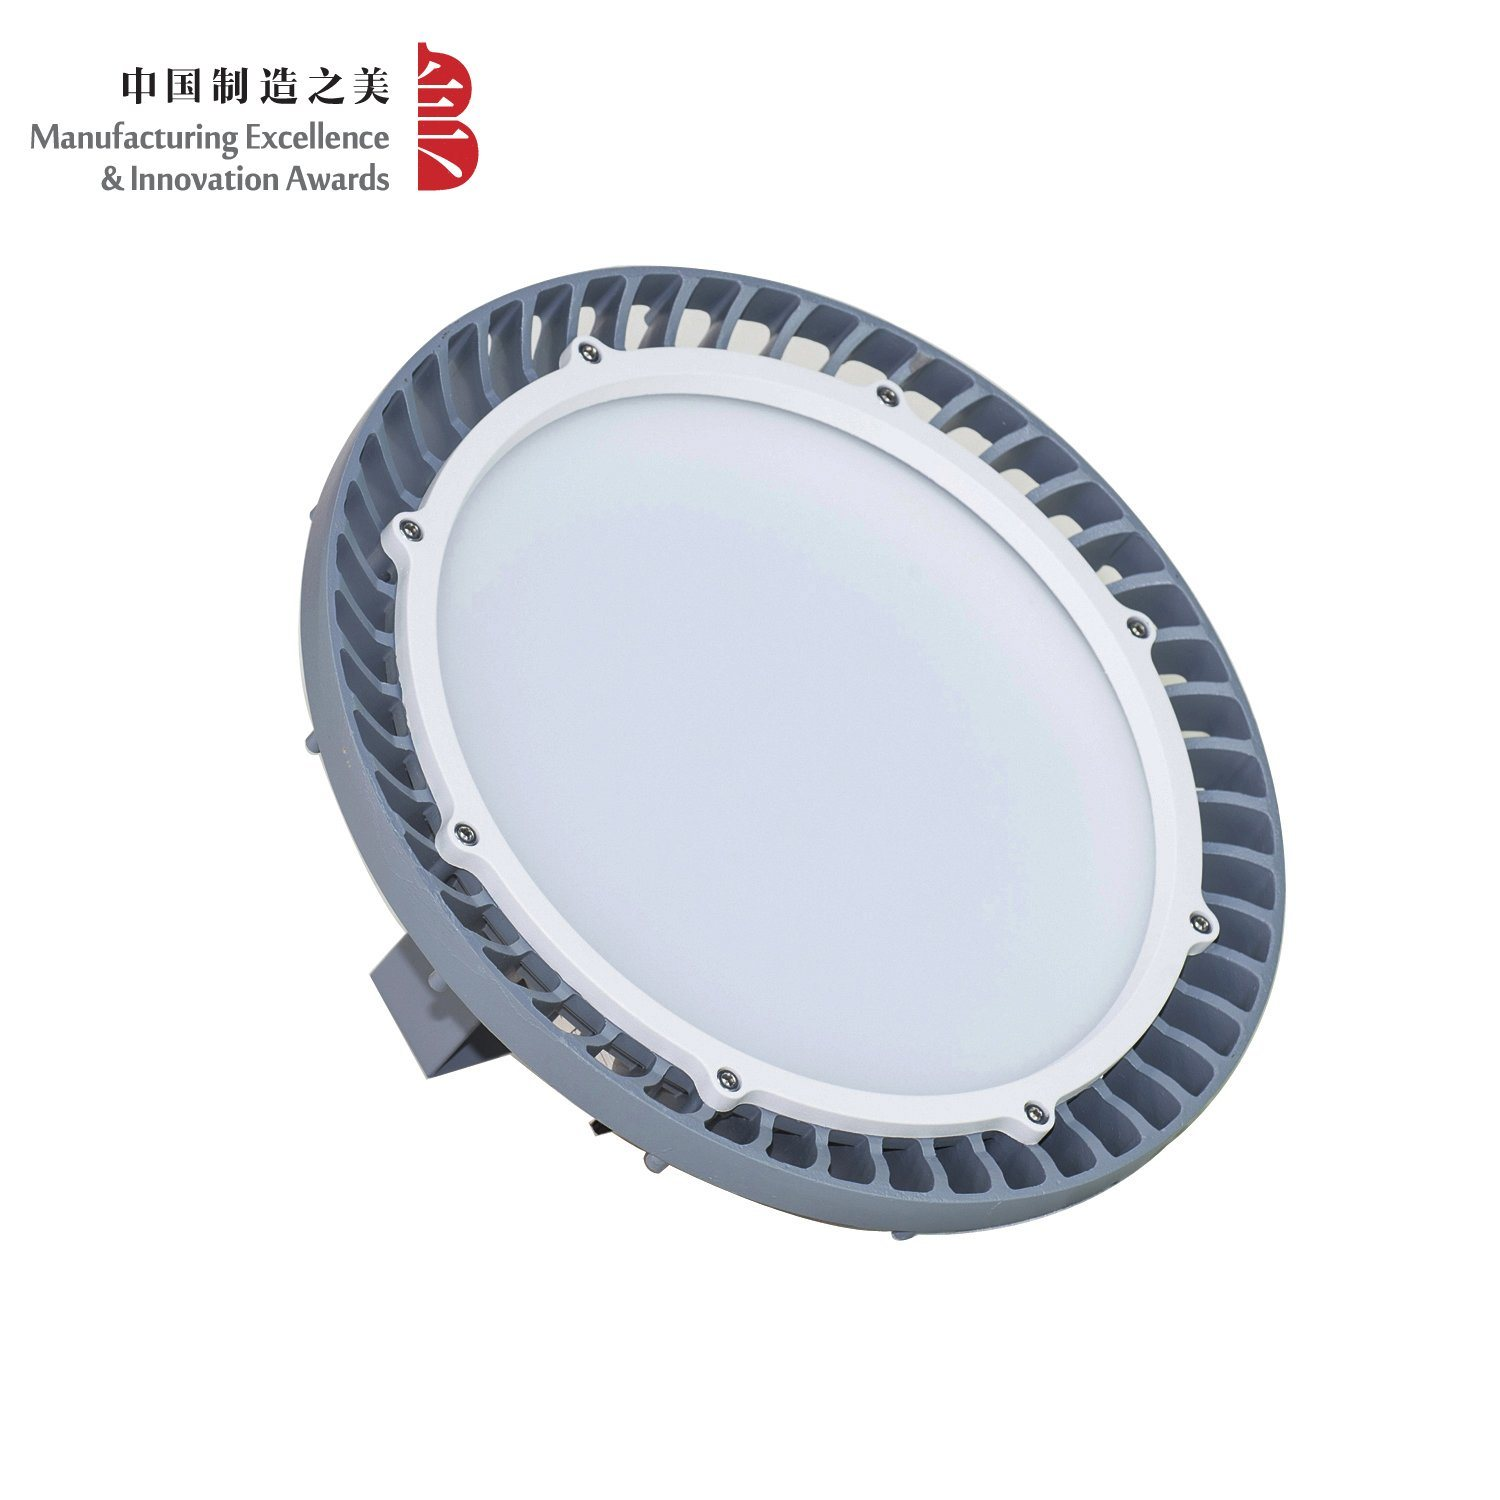 95W Outdoor LED High Bay Light (Bfz 220/90 Xx Y)